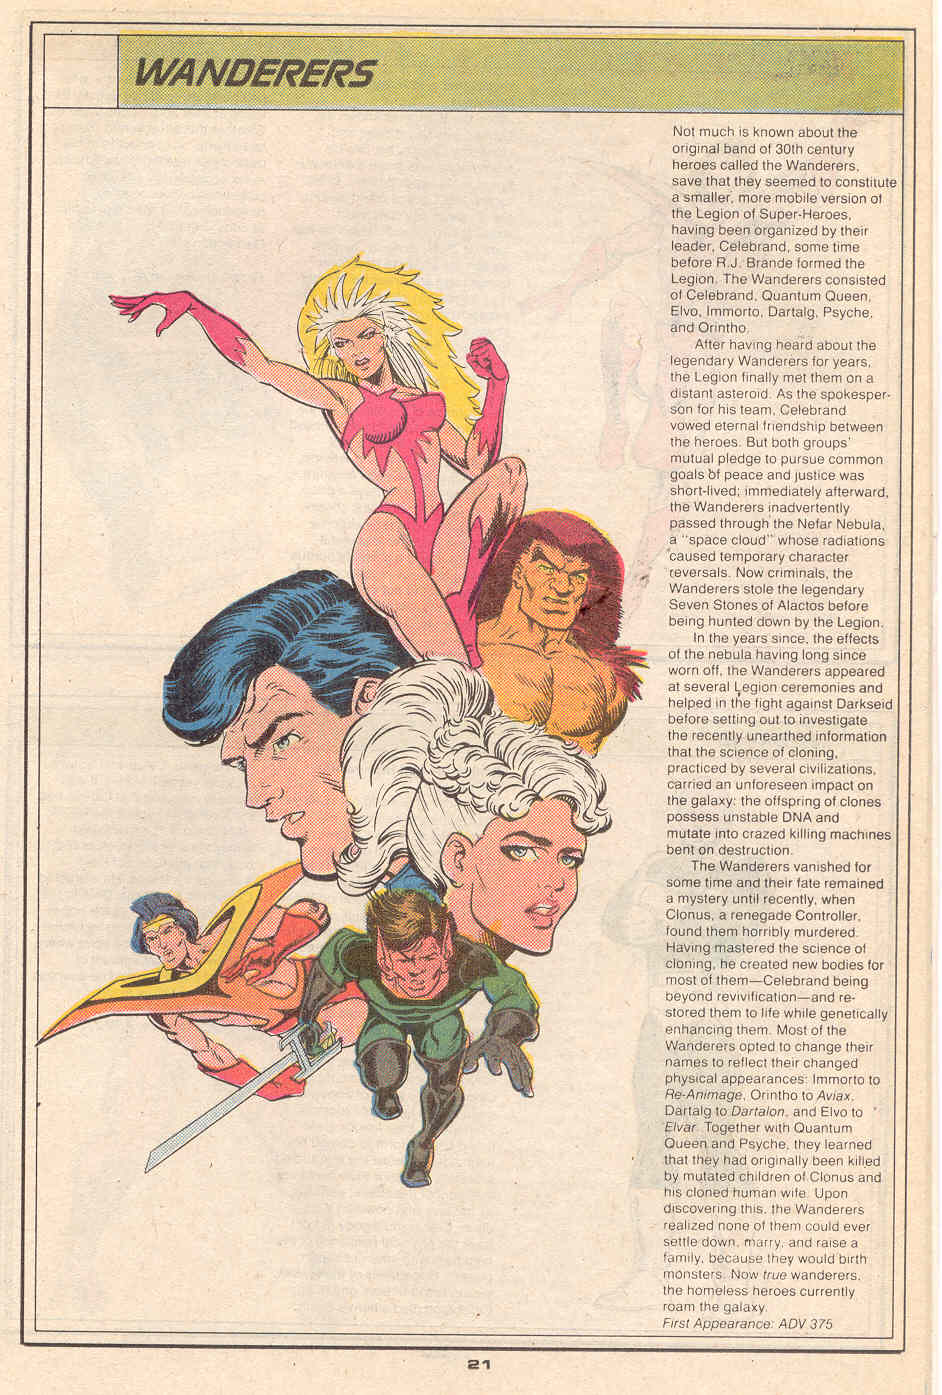 The Wanderers by Dave Hoover and Robert Campanella - Who's Who in the Legion of Super-Heroes #7